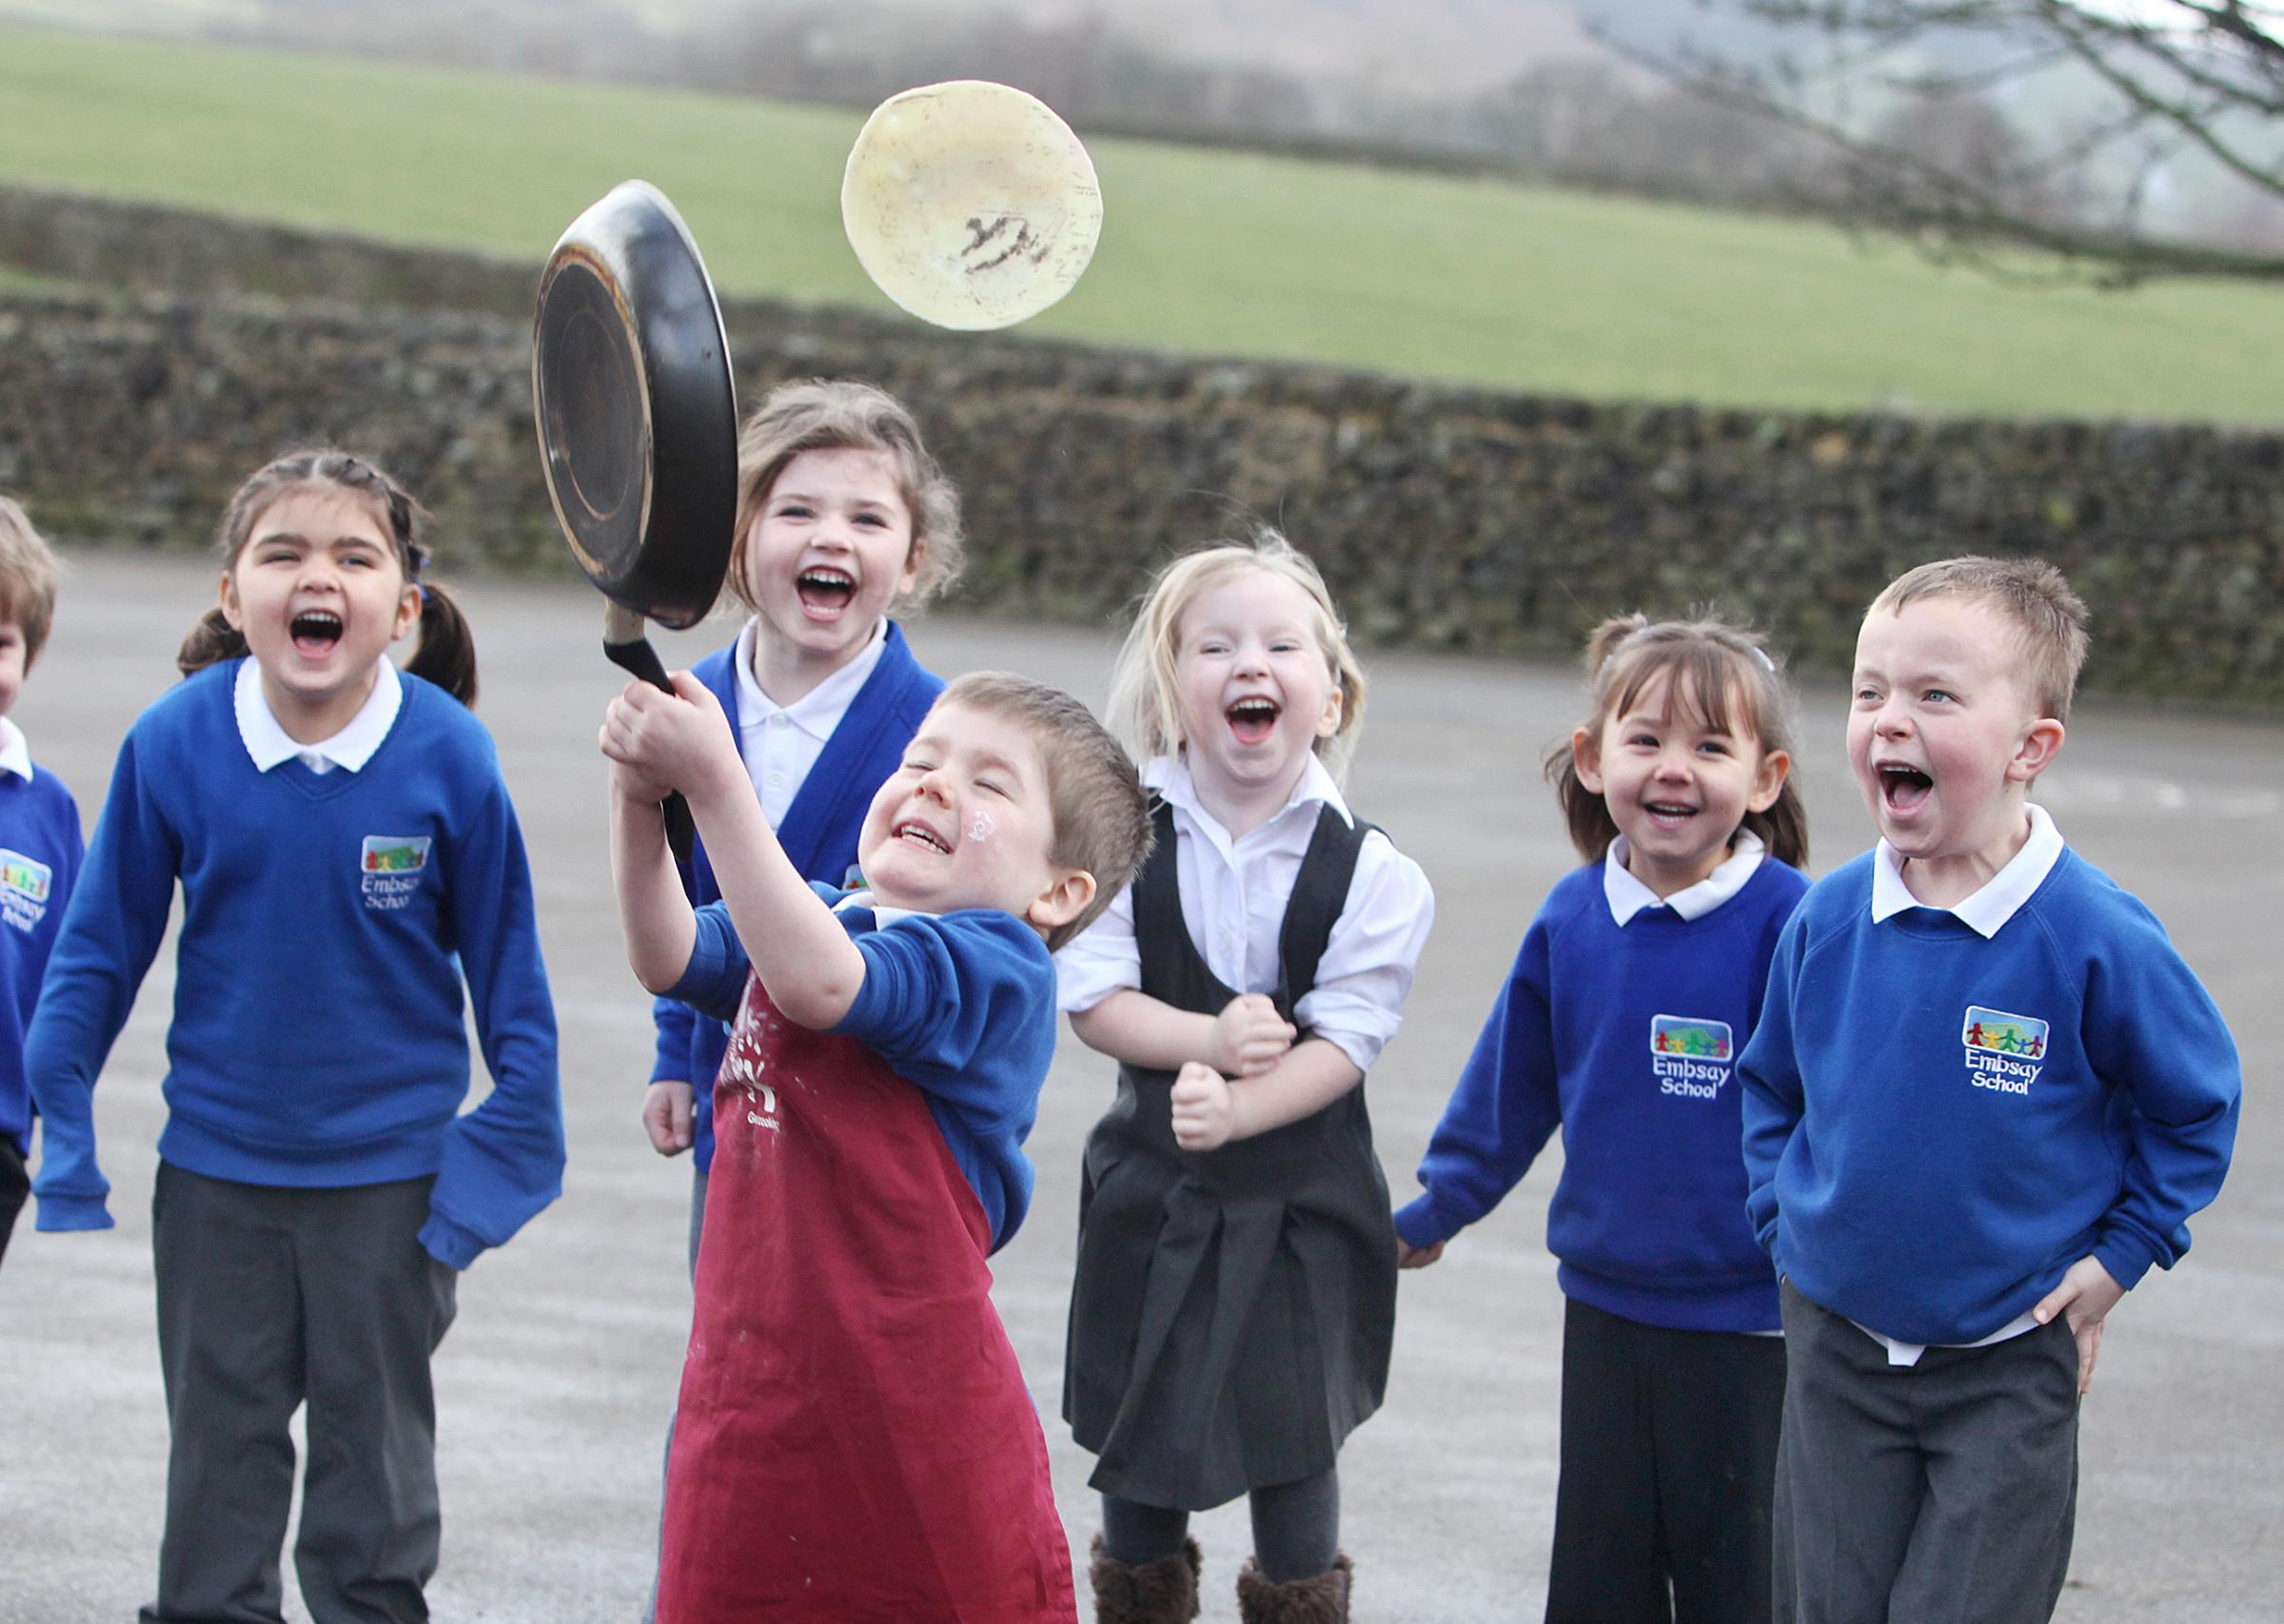 Embsay Primary School's Will Snowden flips the pancake cheered on by classmates